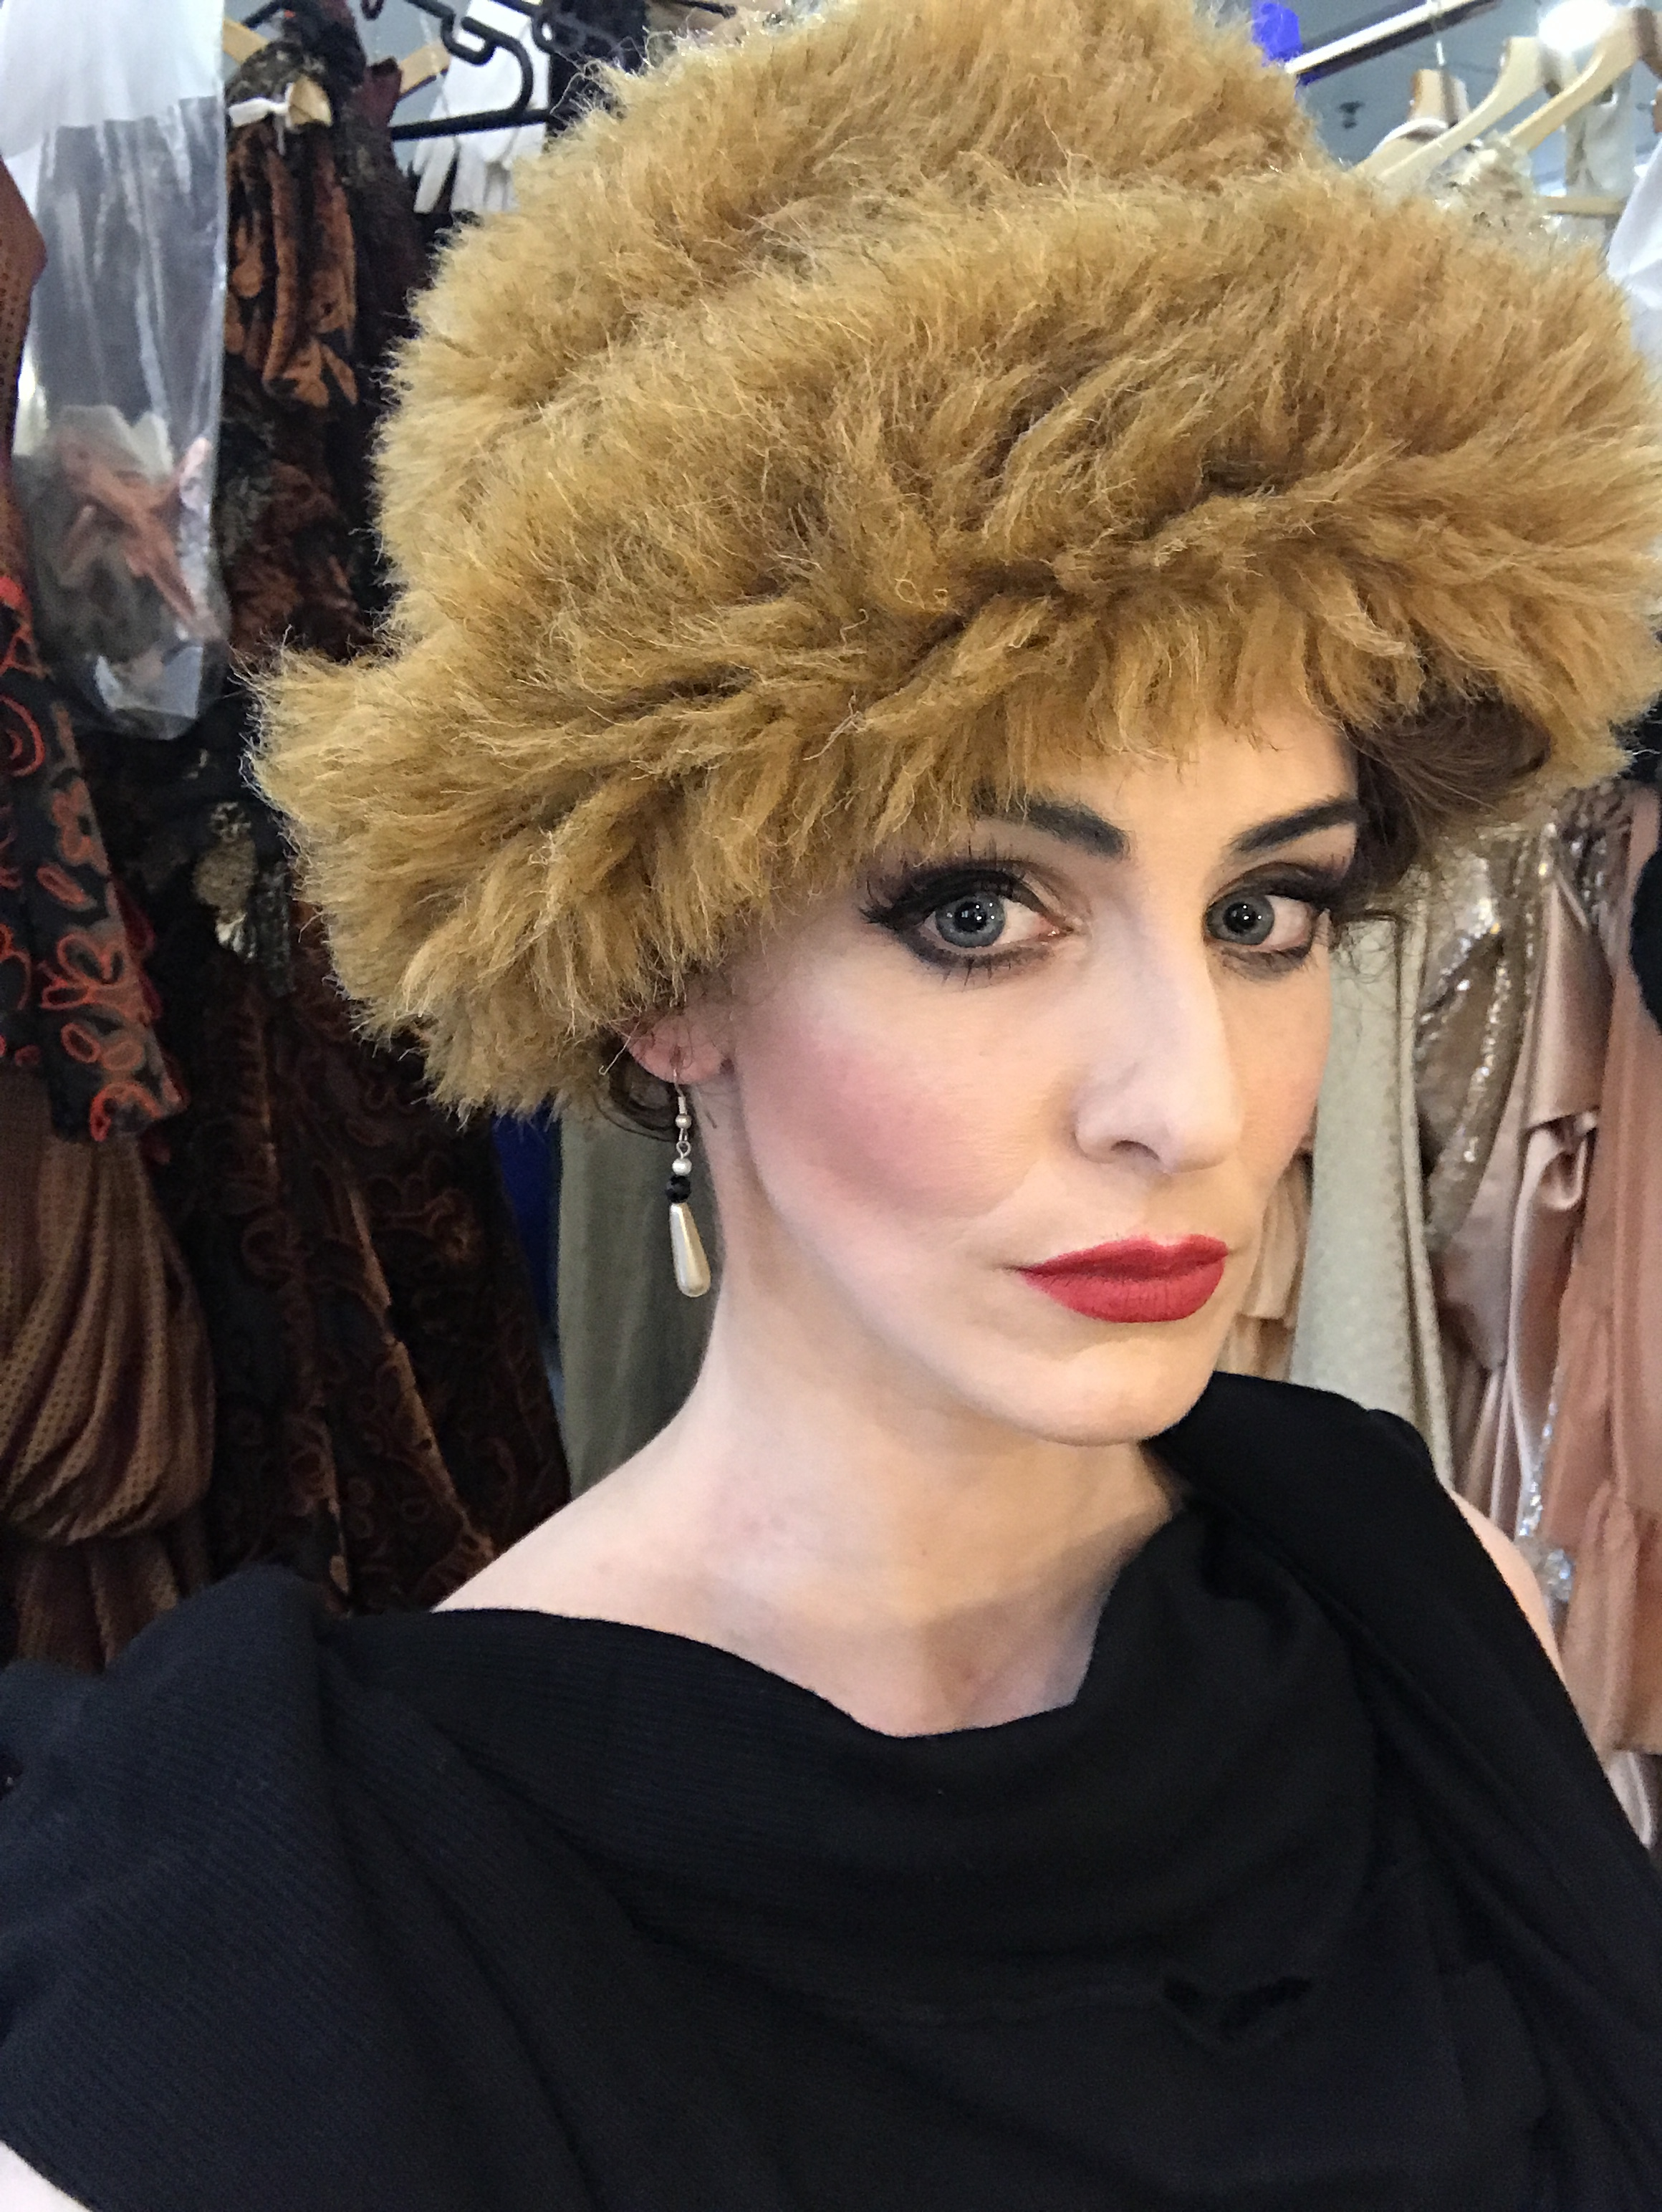 I HAVE TO DO A VERY QUICK CHANGE FROM SNOW SCENE TO BEDROOM SCENE. IN ABOUT 30 SECONDS I HAVE TO CHANGE MY HAT TO A HEADRESS, SWAP JEWELLERY AND OBVIOUSLY CHANGE OUTFIT.